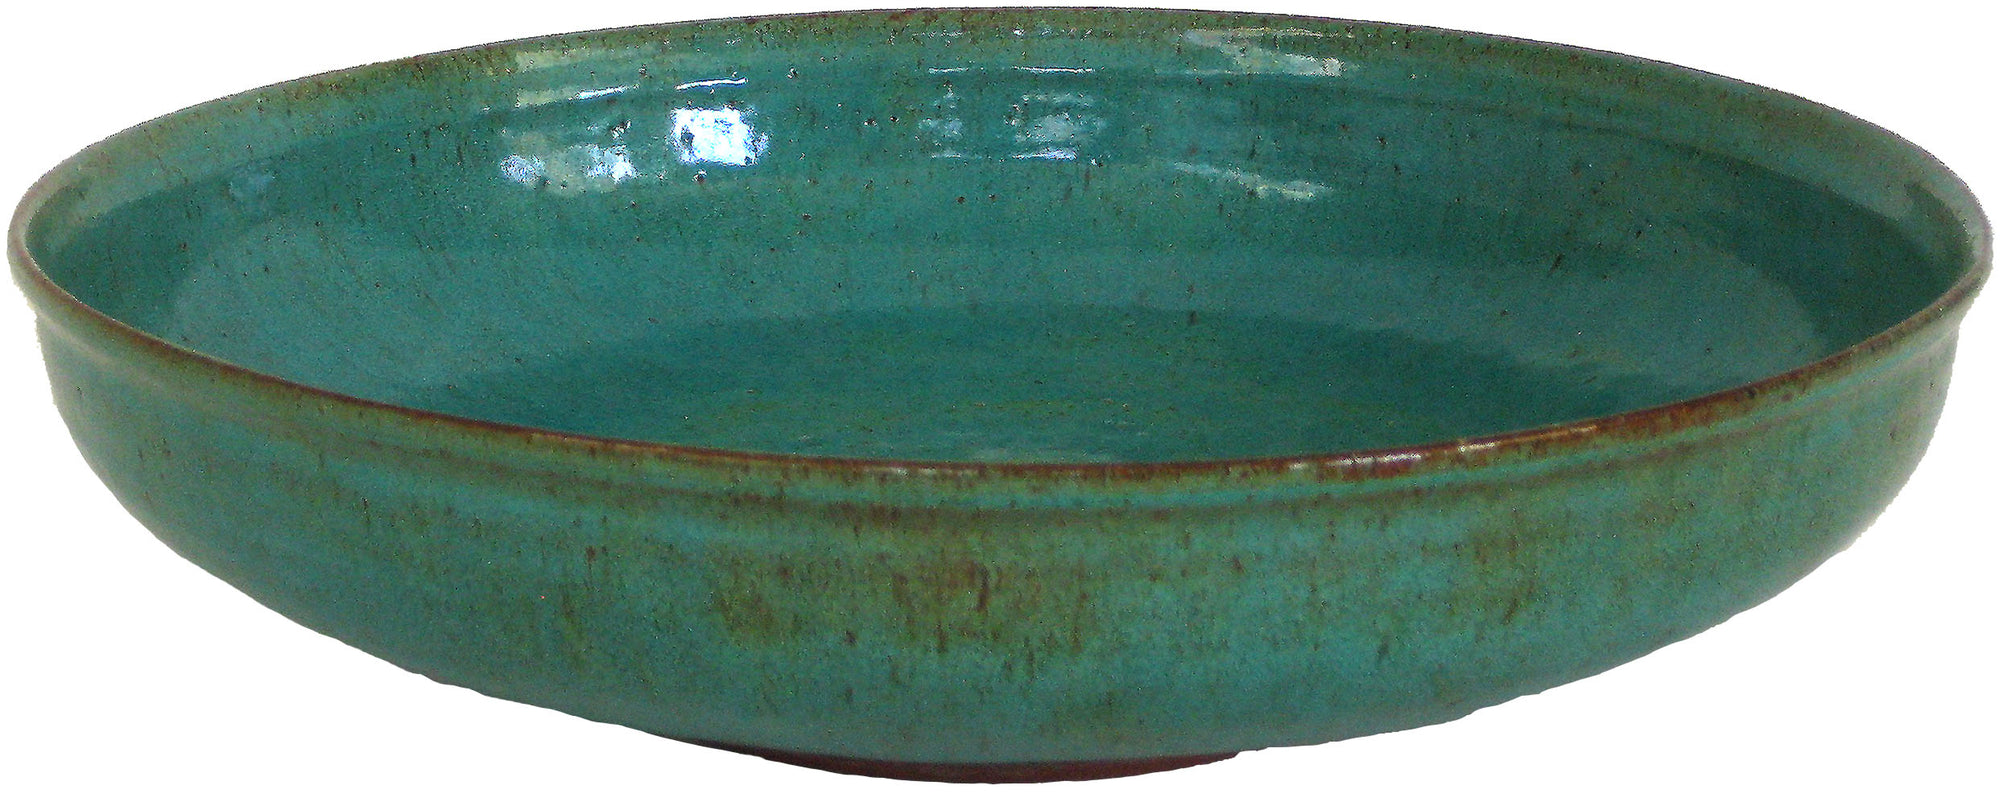 Original Teal Ceramic<br>Mid Century<br><br>#5023